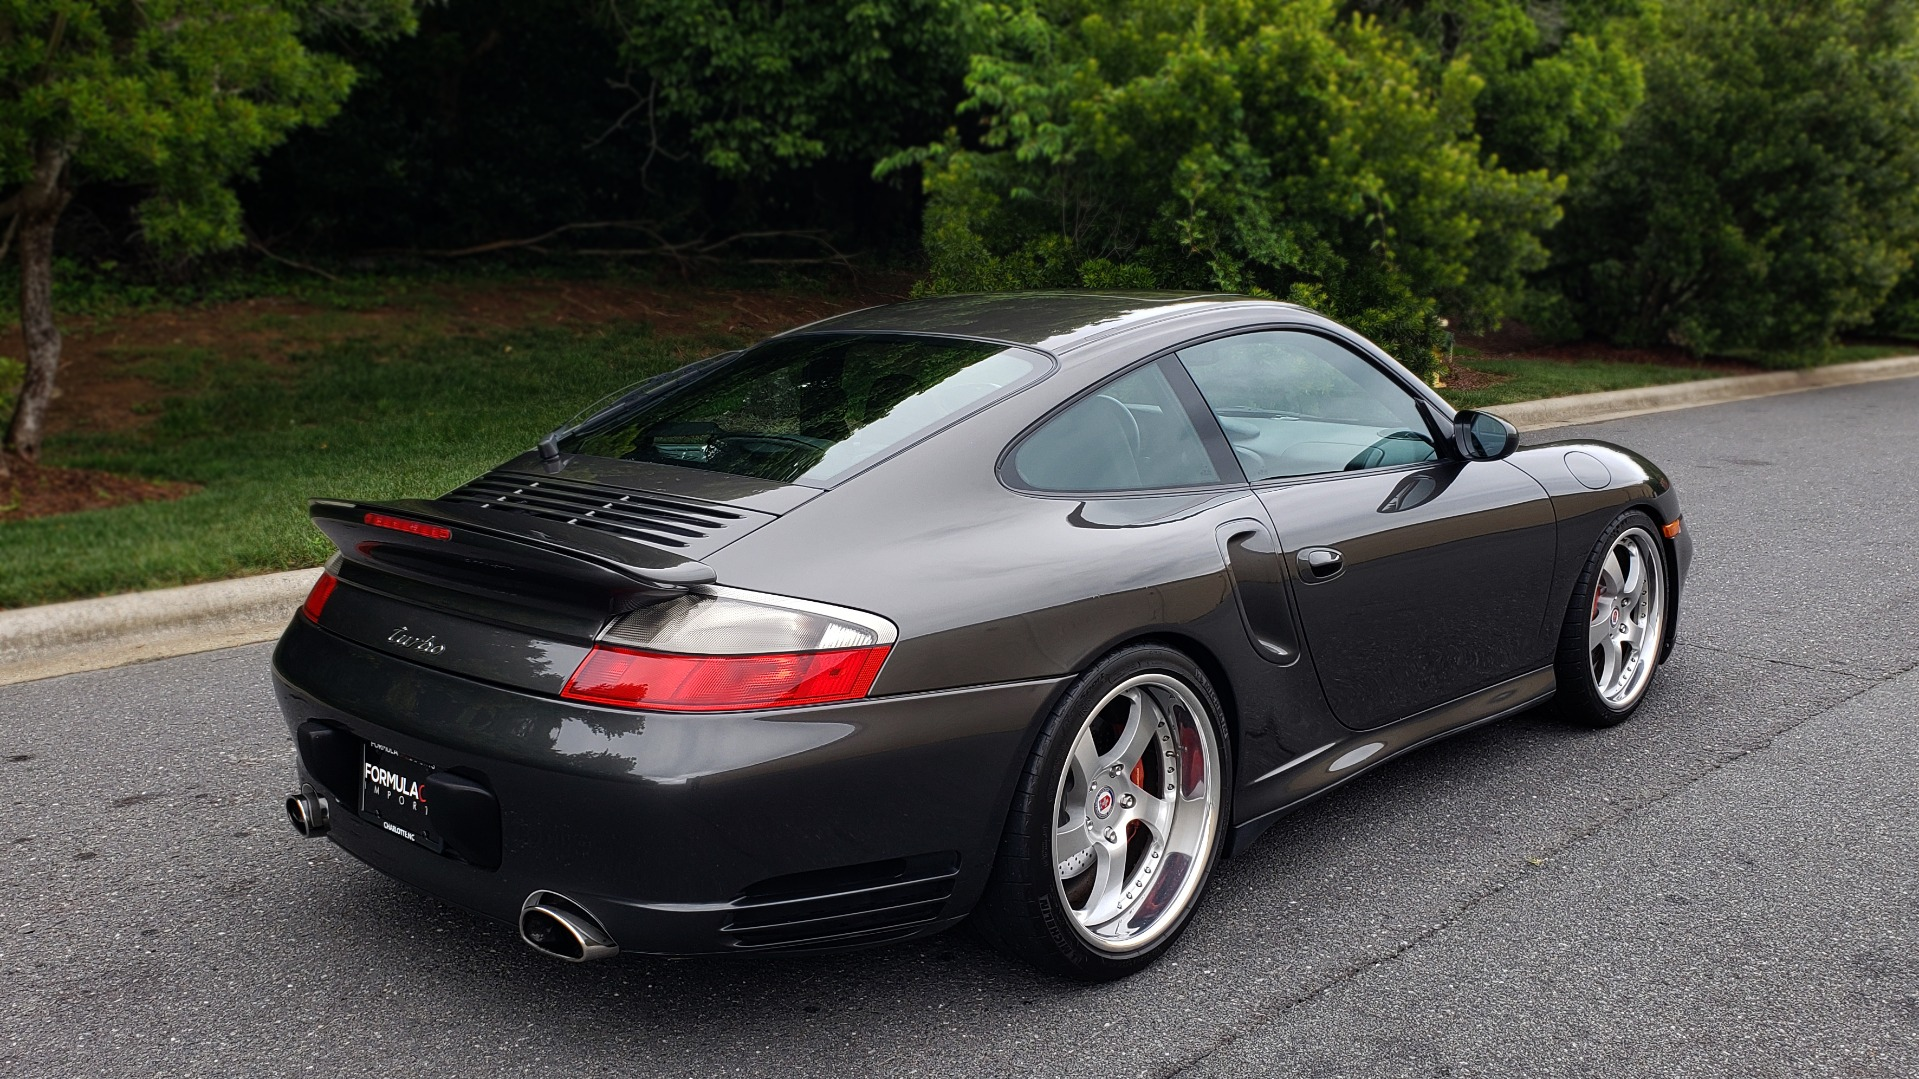 Used 2002 Porsche 911 CARRERA TURBO / 6-SPD MAN / ALPINE / BOSE / PERF UPGRADES for sale $53,995 at Formula Imports in Charlotte NC 28227 11